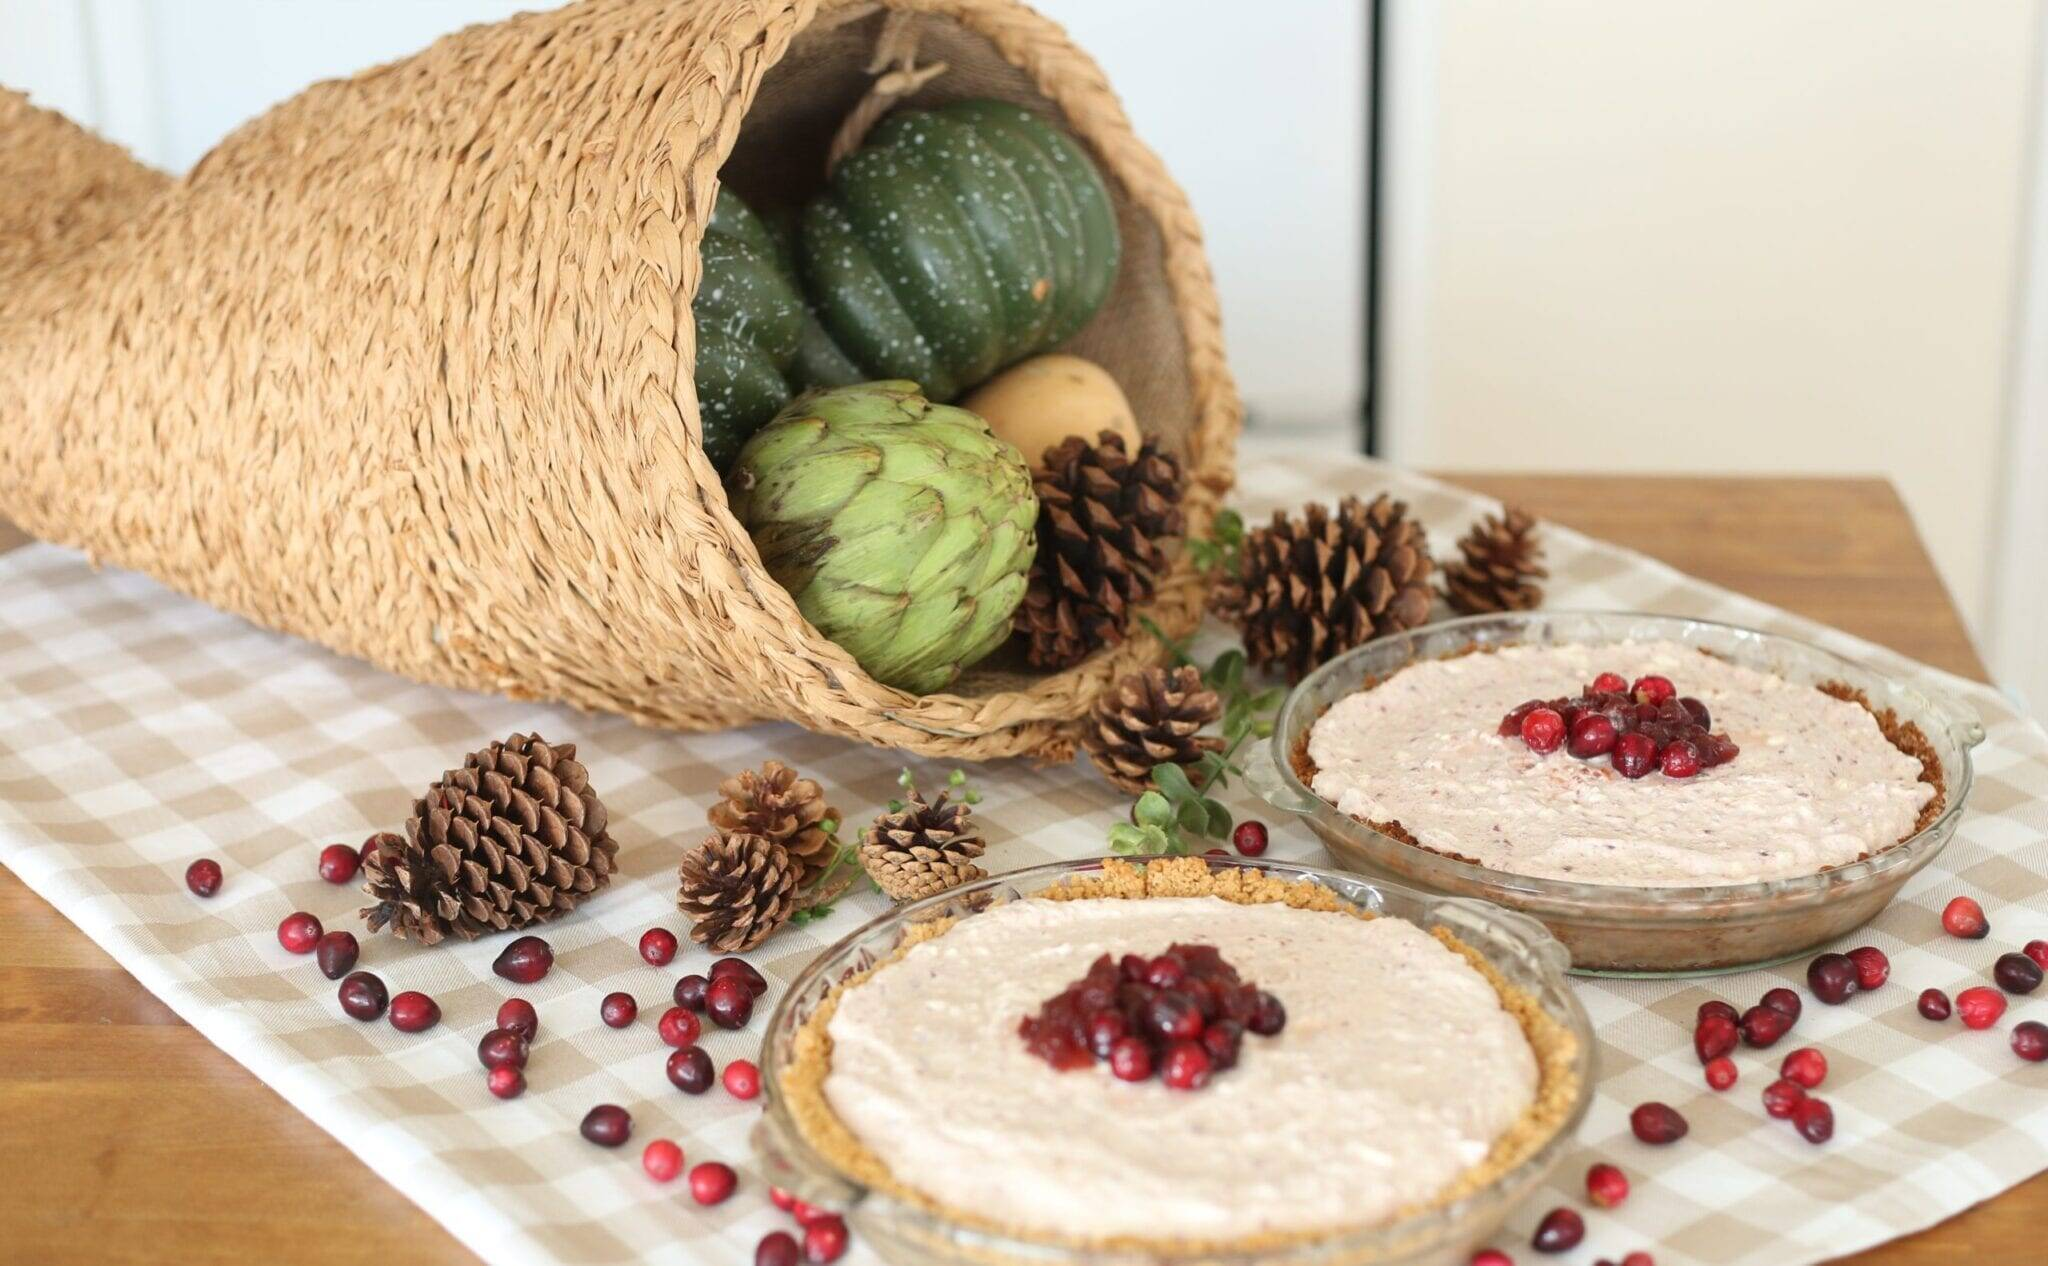 Cornucopia and cranberry pies